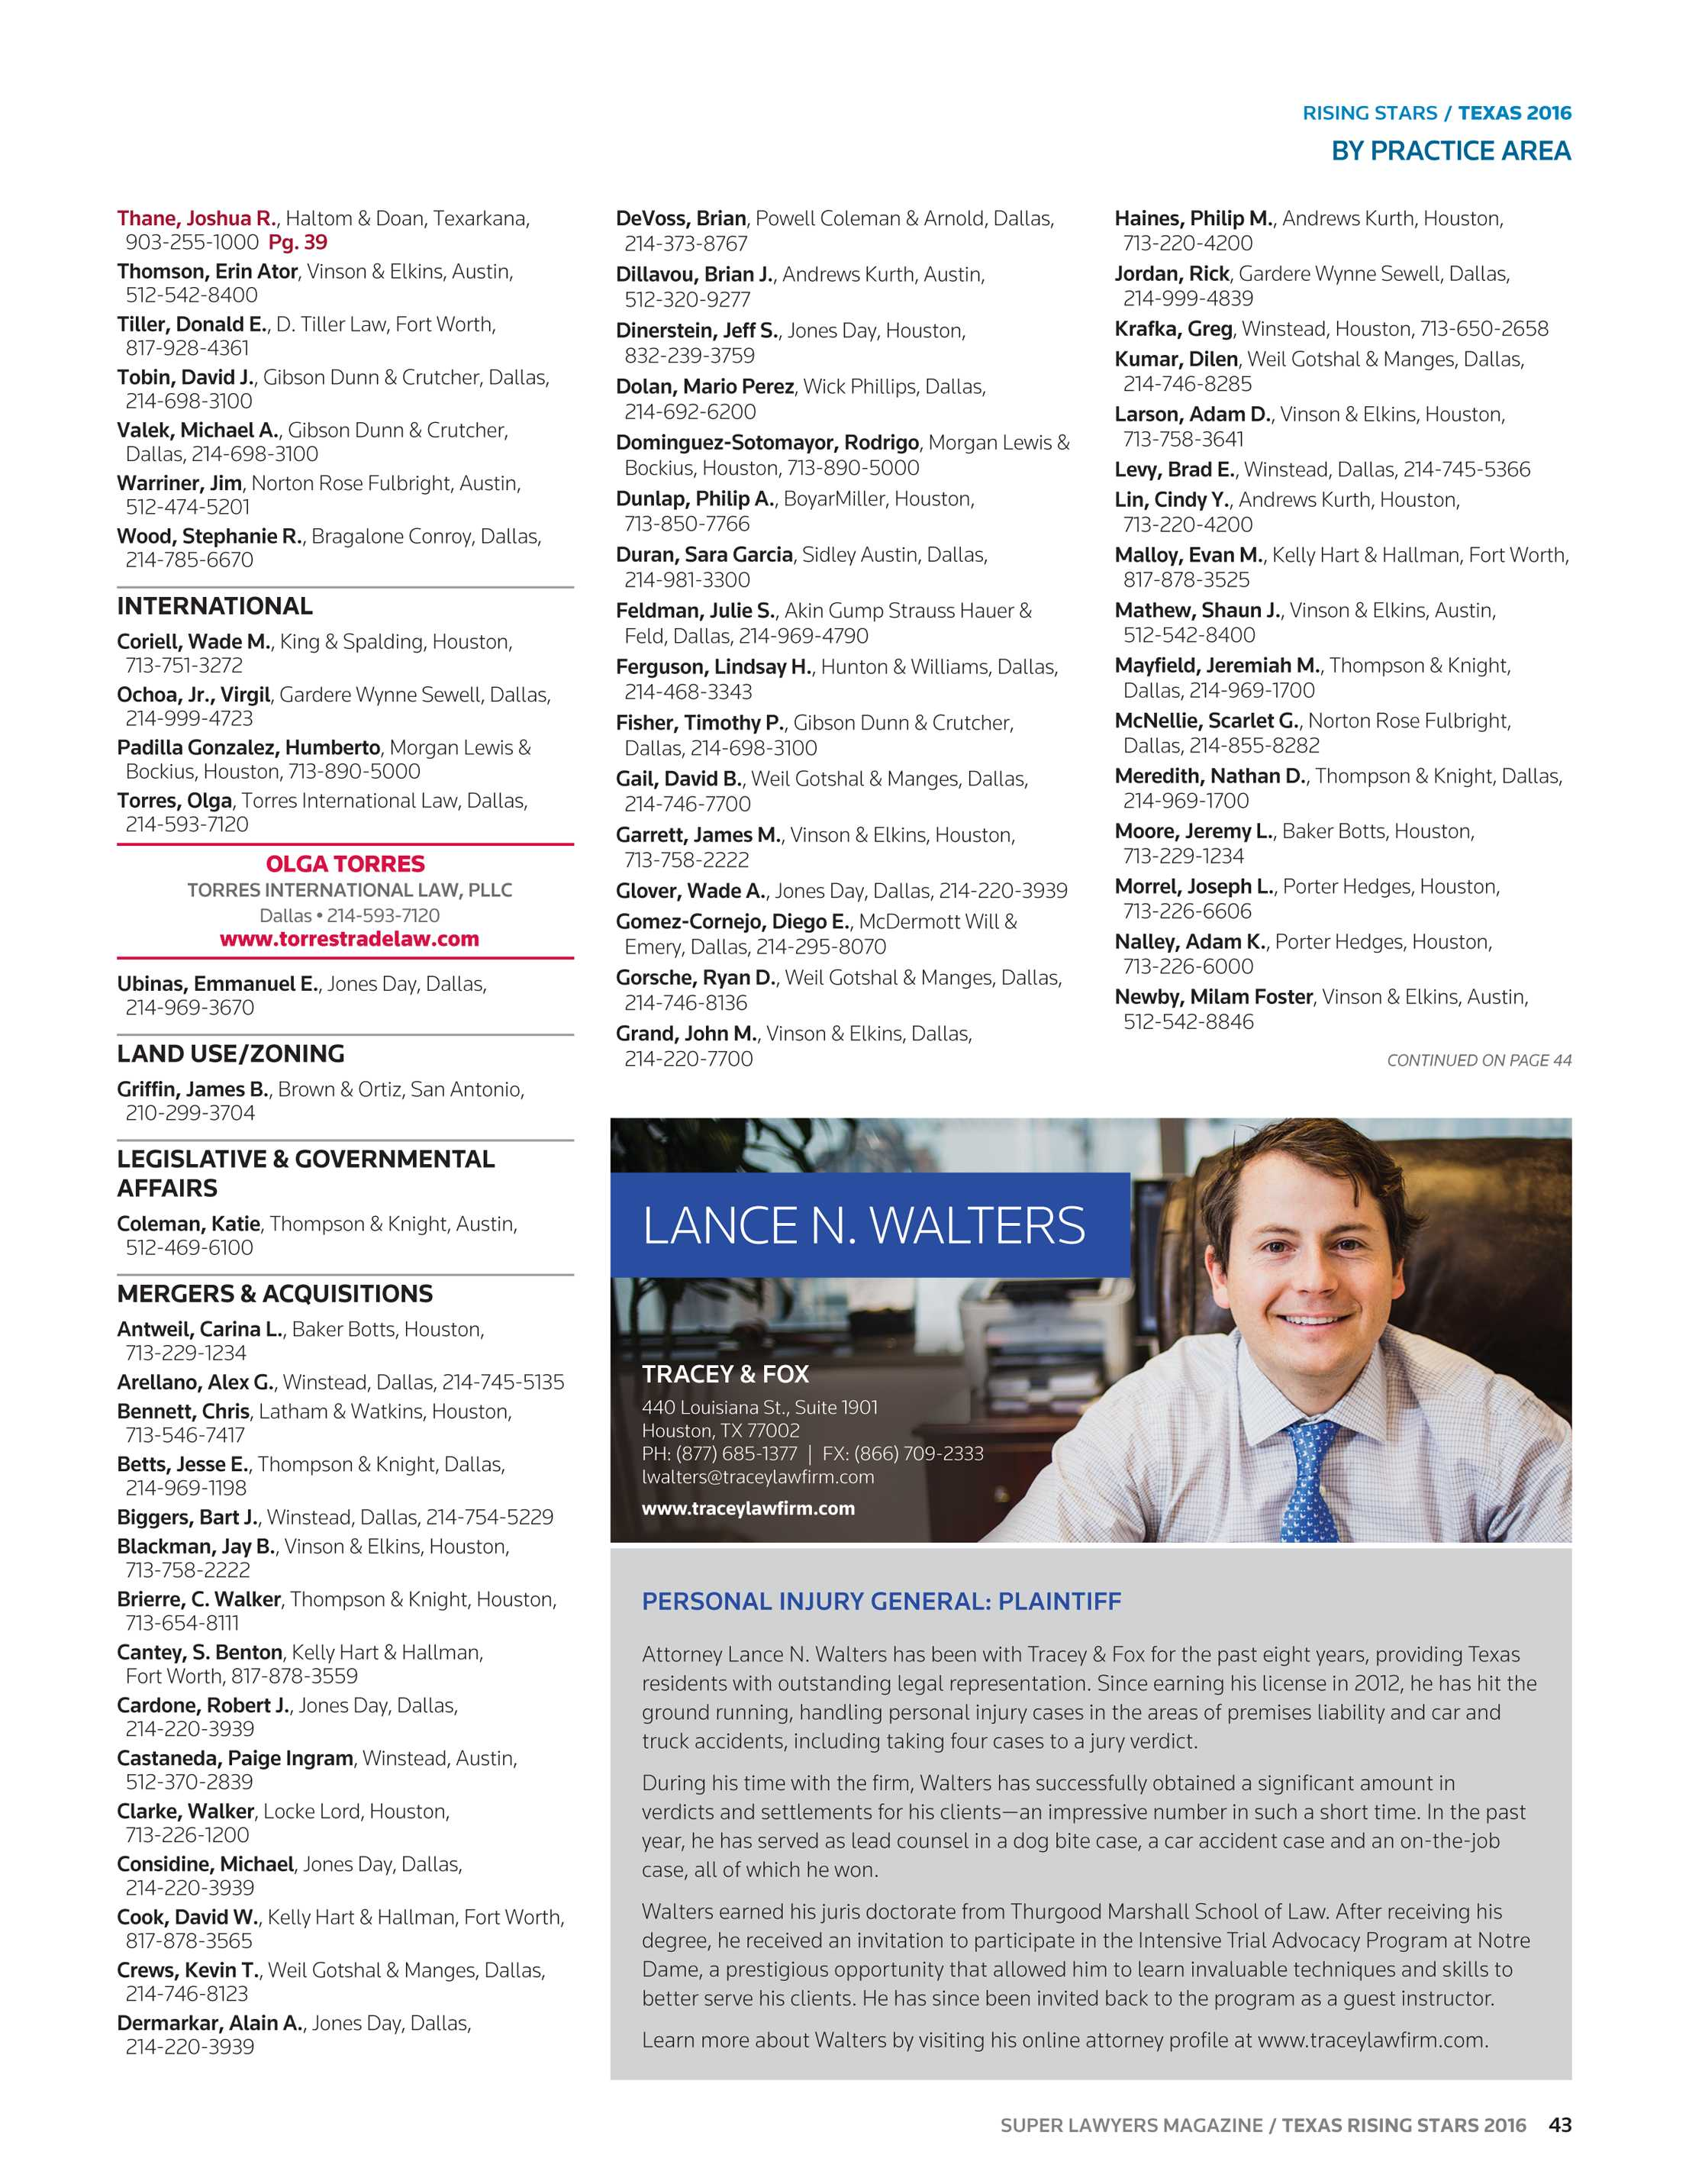 Super Lawyers - Texas Rising Stars 2016 - page 43